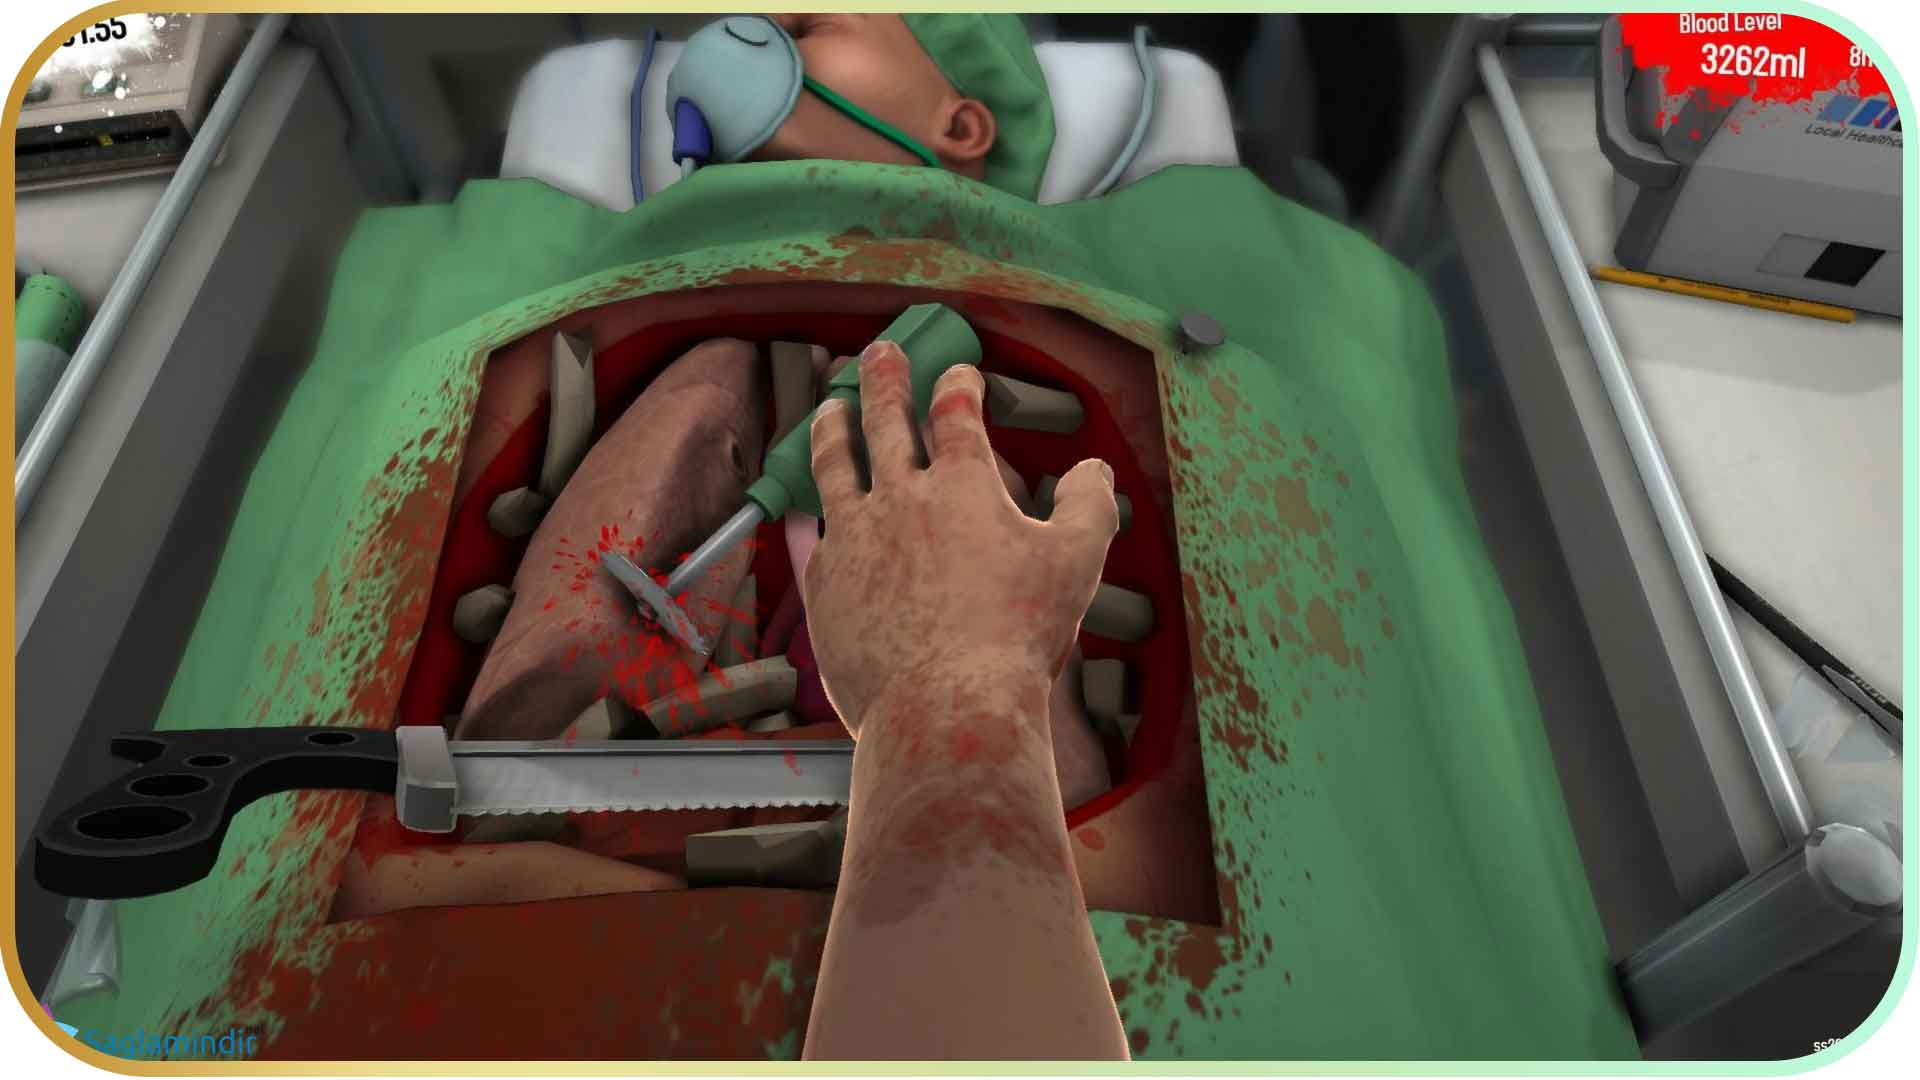 Surgeon Simulator 2013 torrent indir